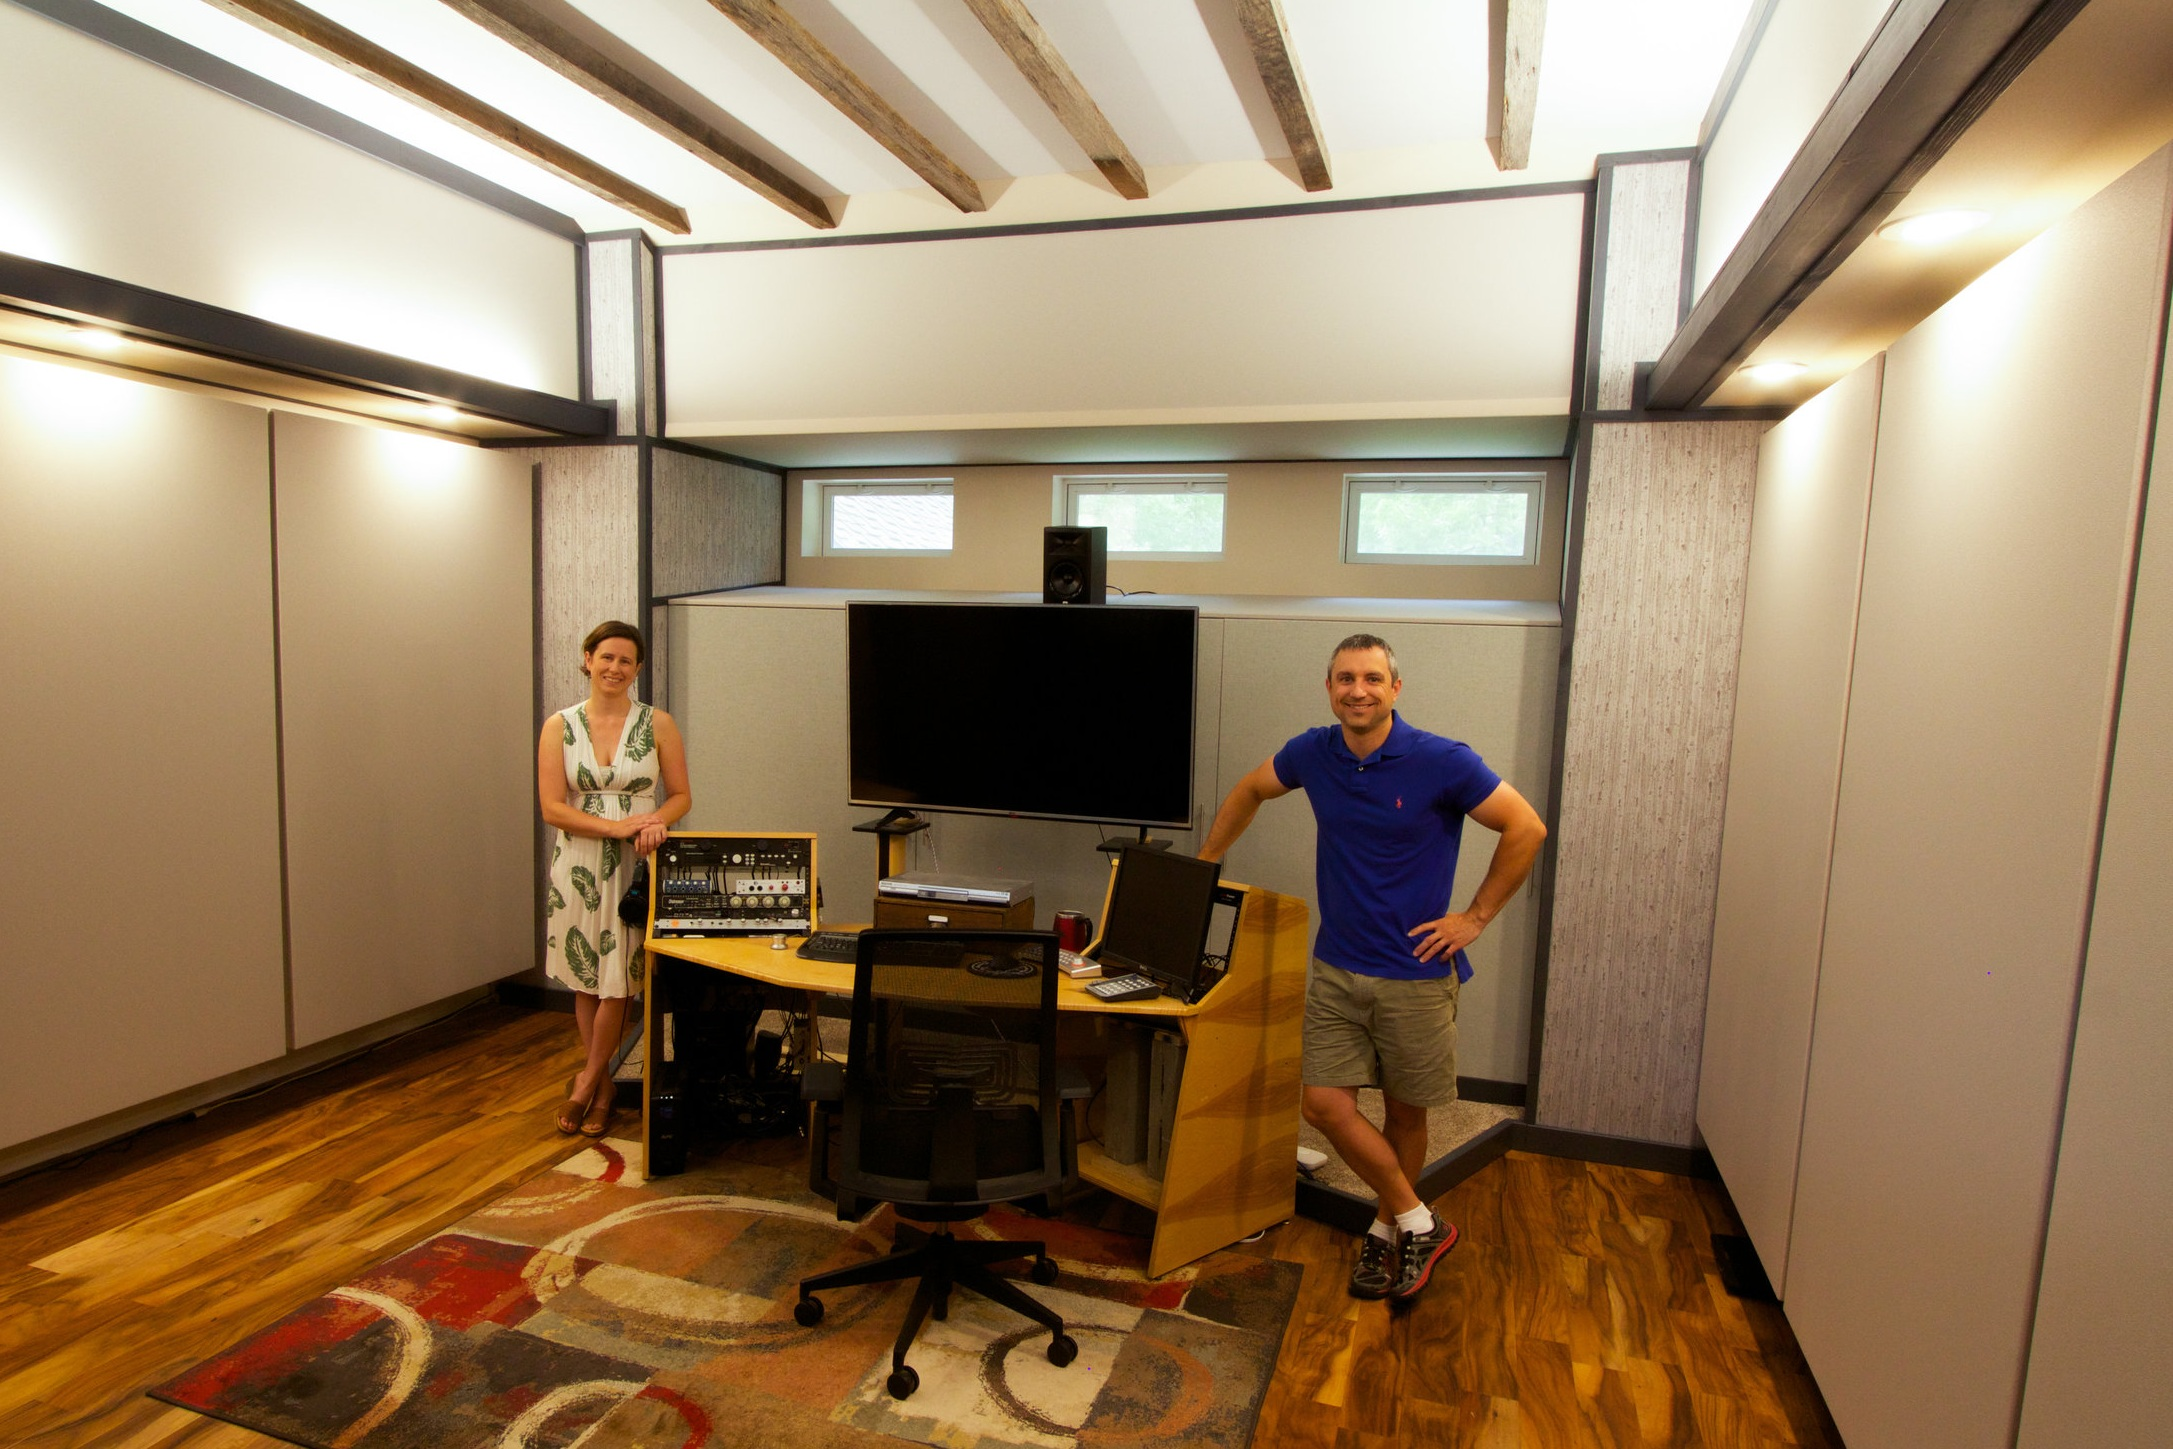 New Bloomington, Indiana studio completed in August 2018